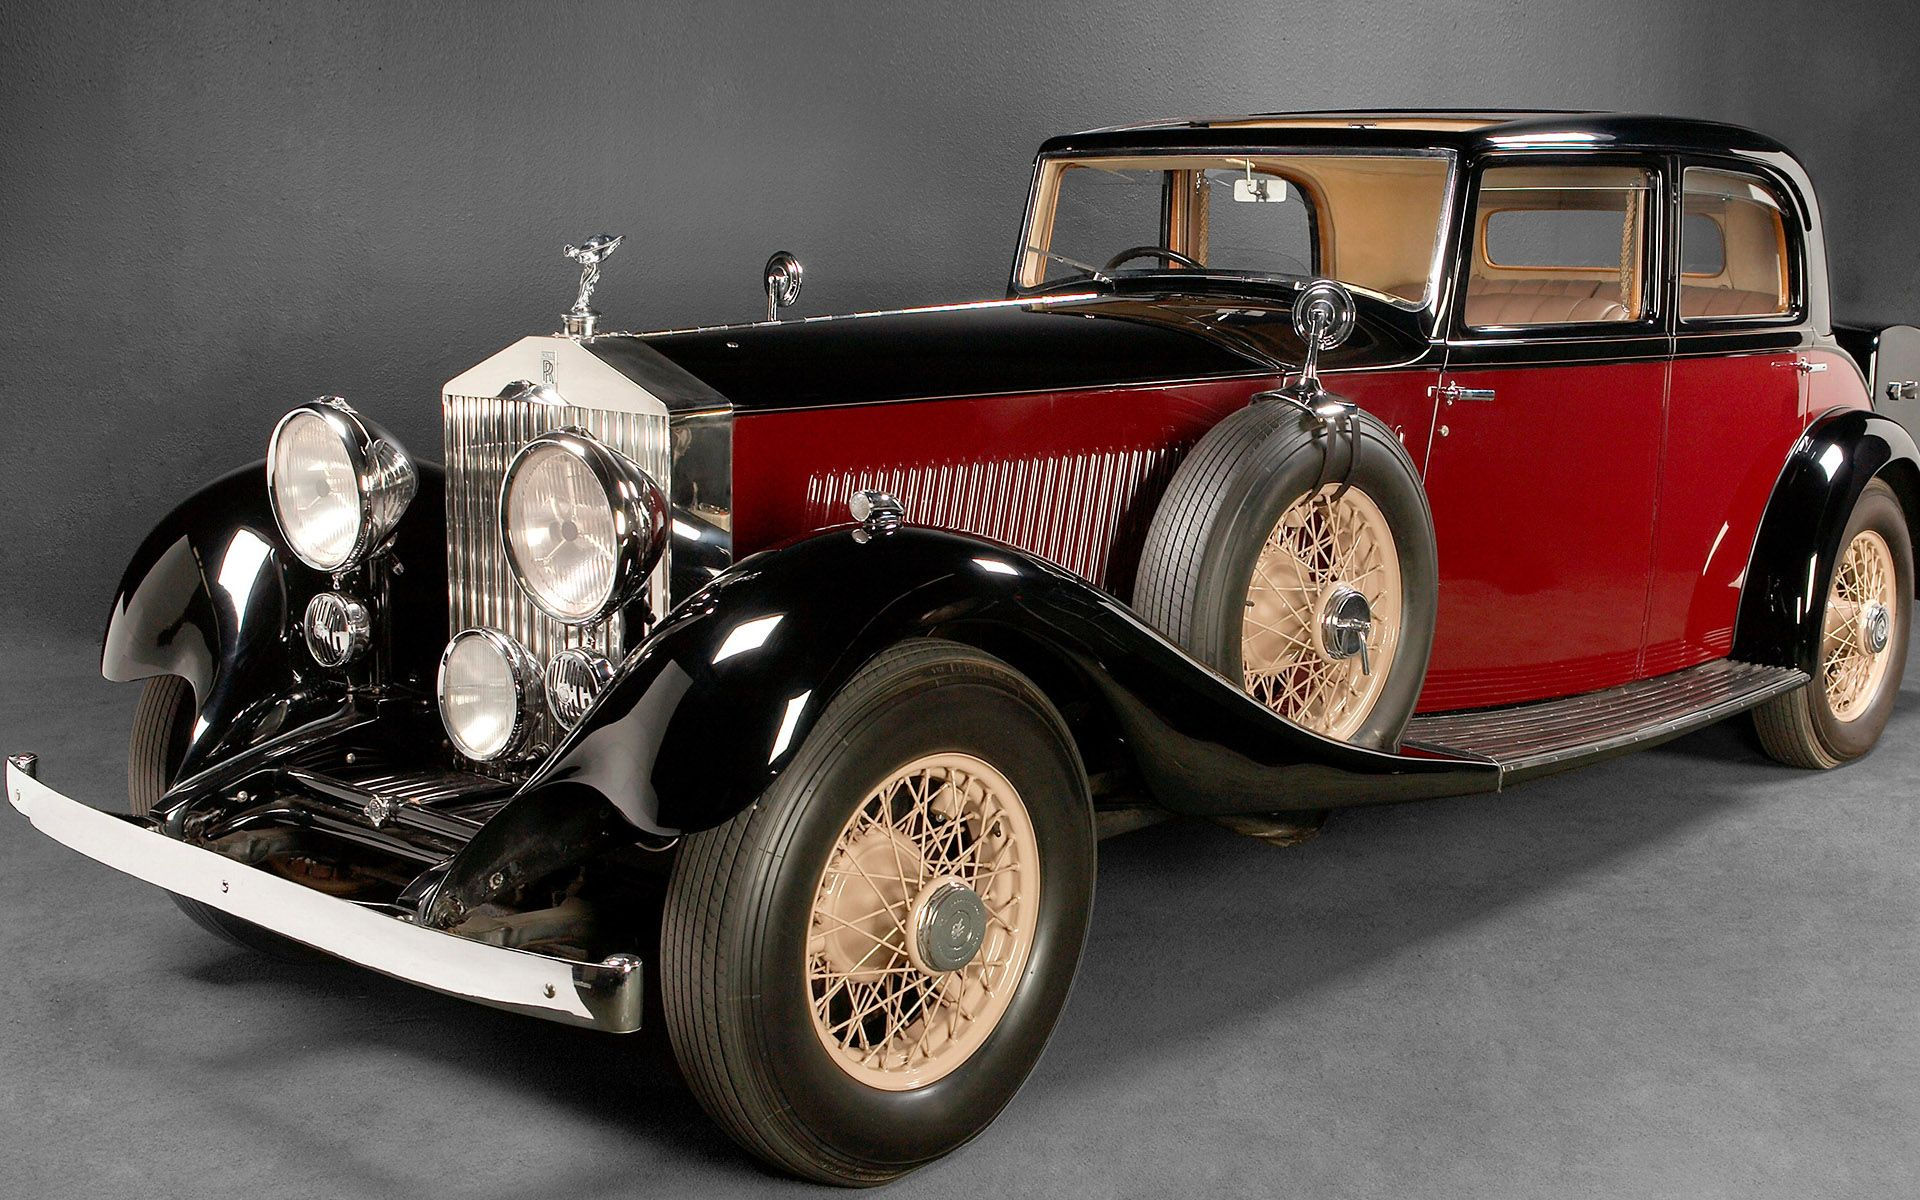 I Dream About An Old Rolls Royce Like This One Rolls Royce Rolls Royce Cars Cool Old Cars